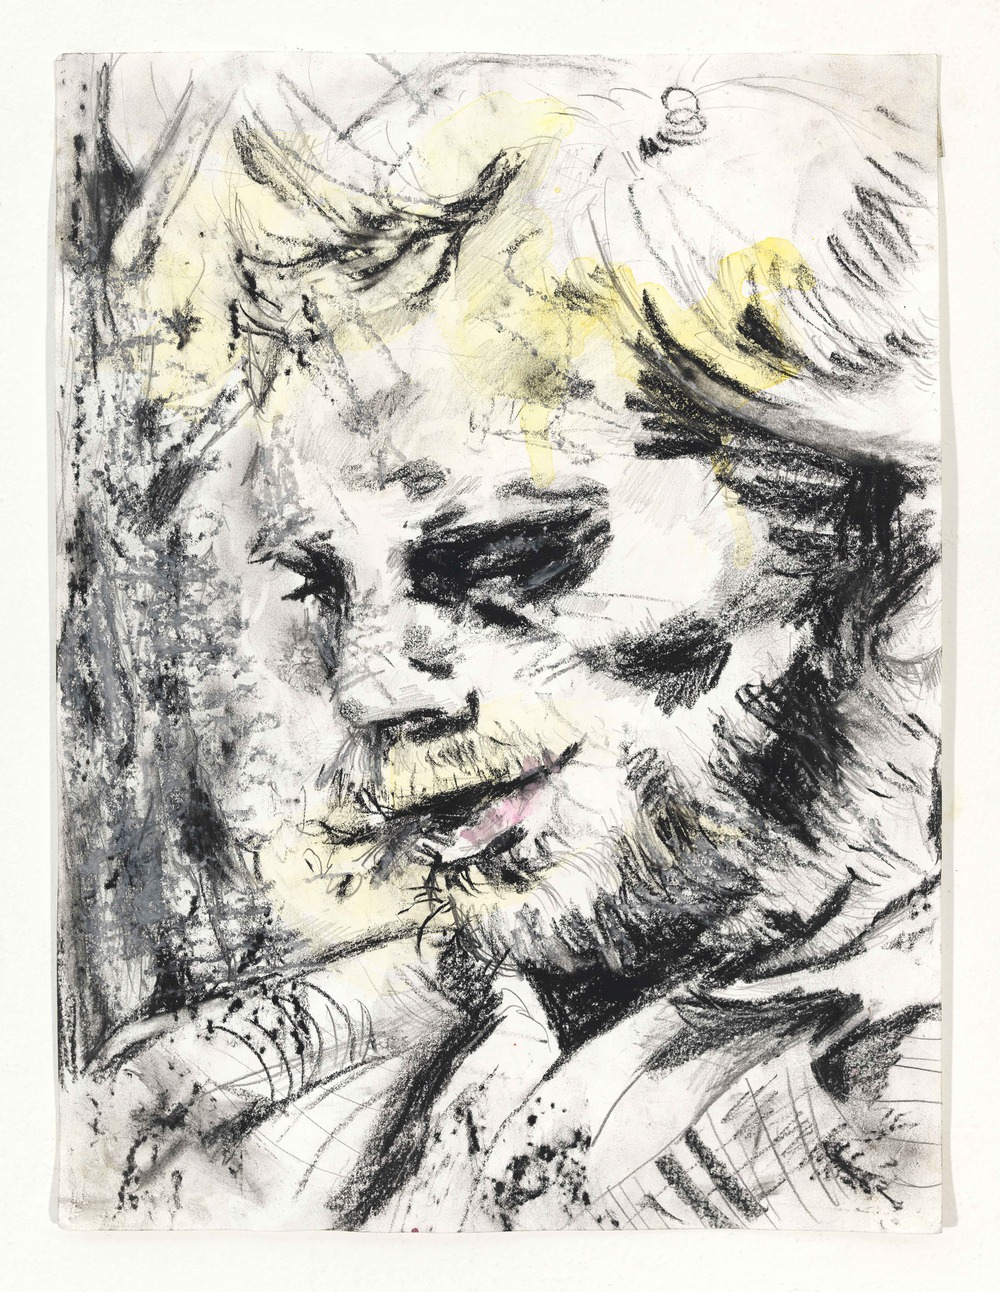 Pencil, Charcoal, Watercolor on Paper  2013